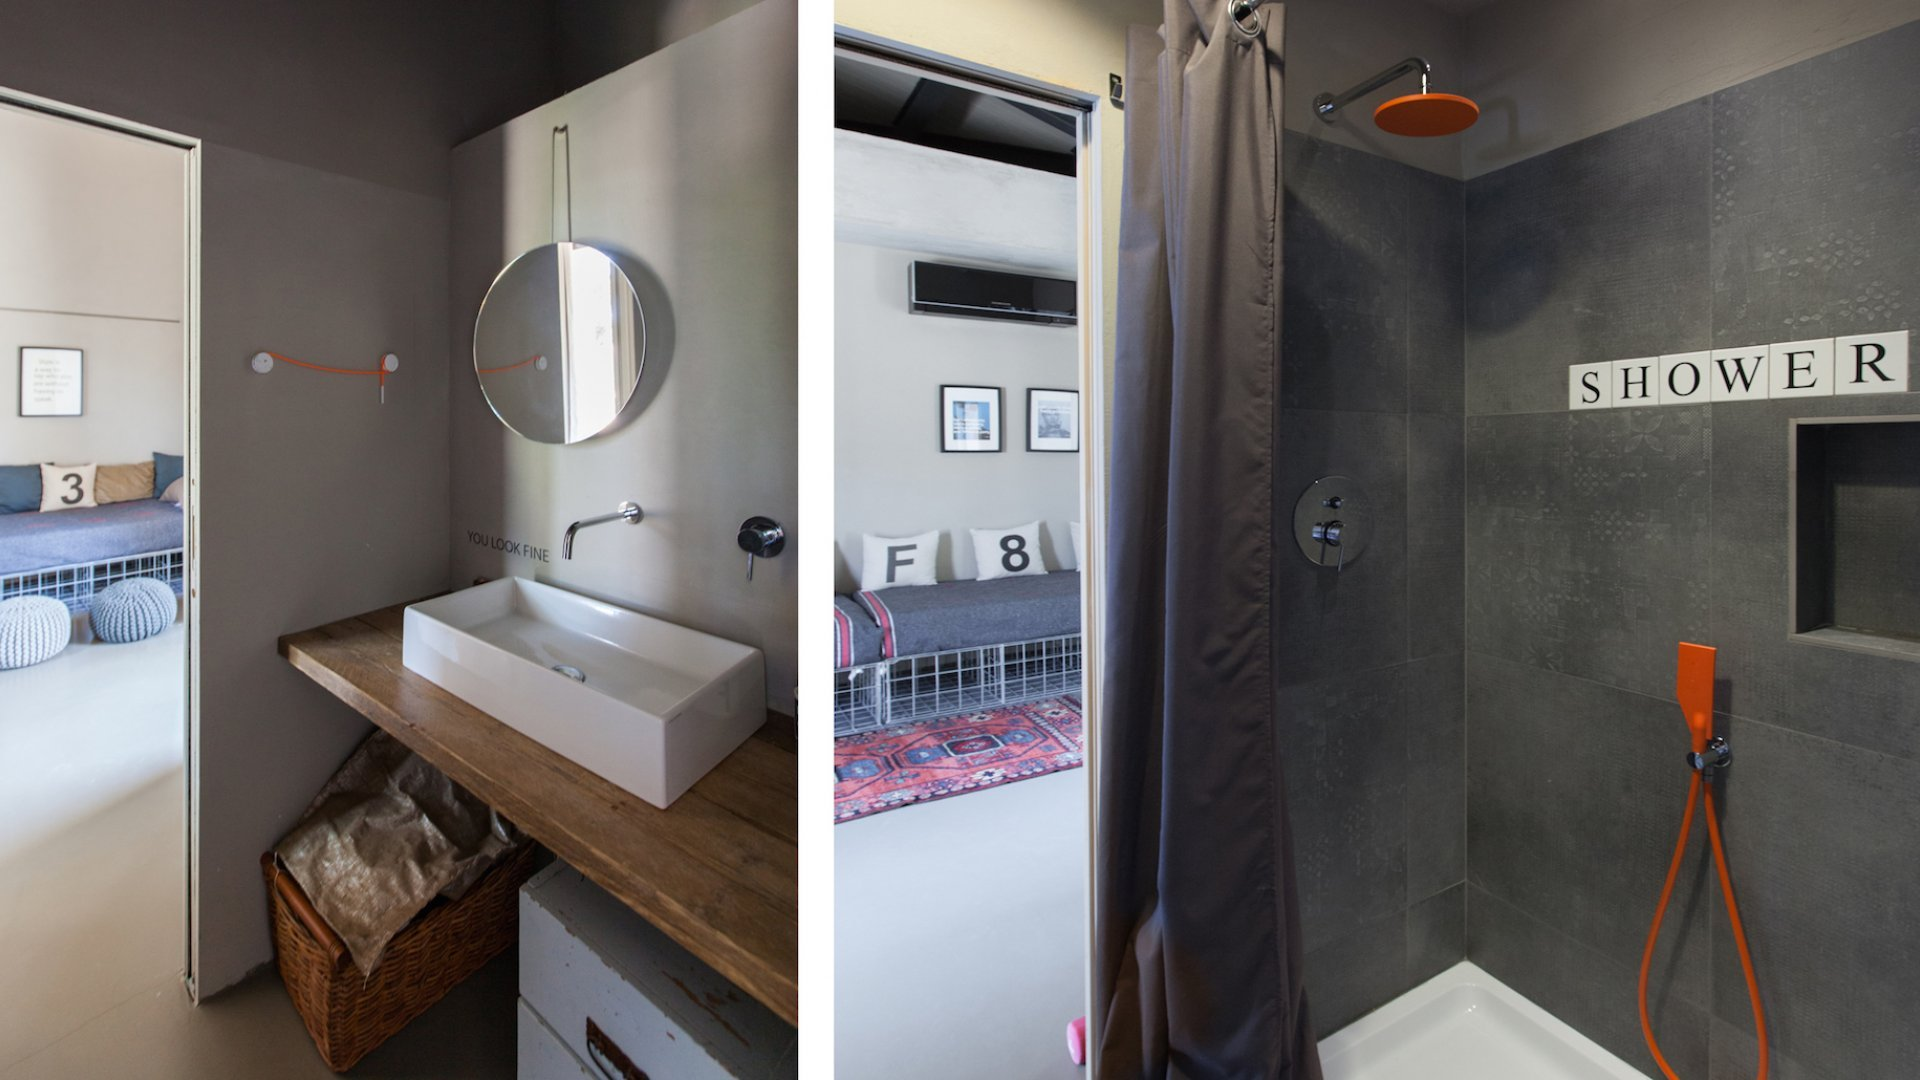 bathroom shared by bedrooms 1 & 2